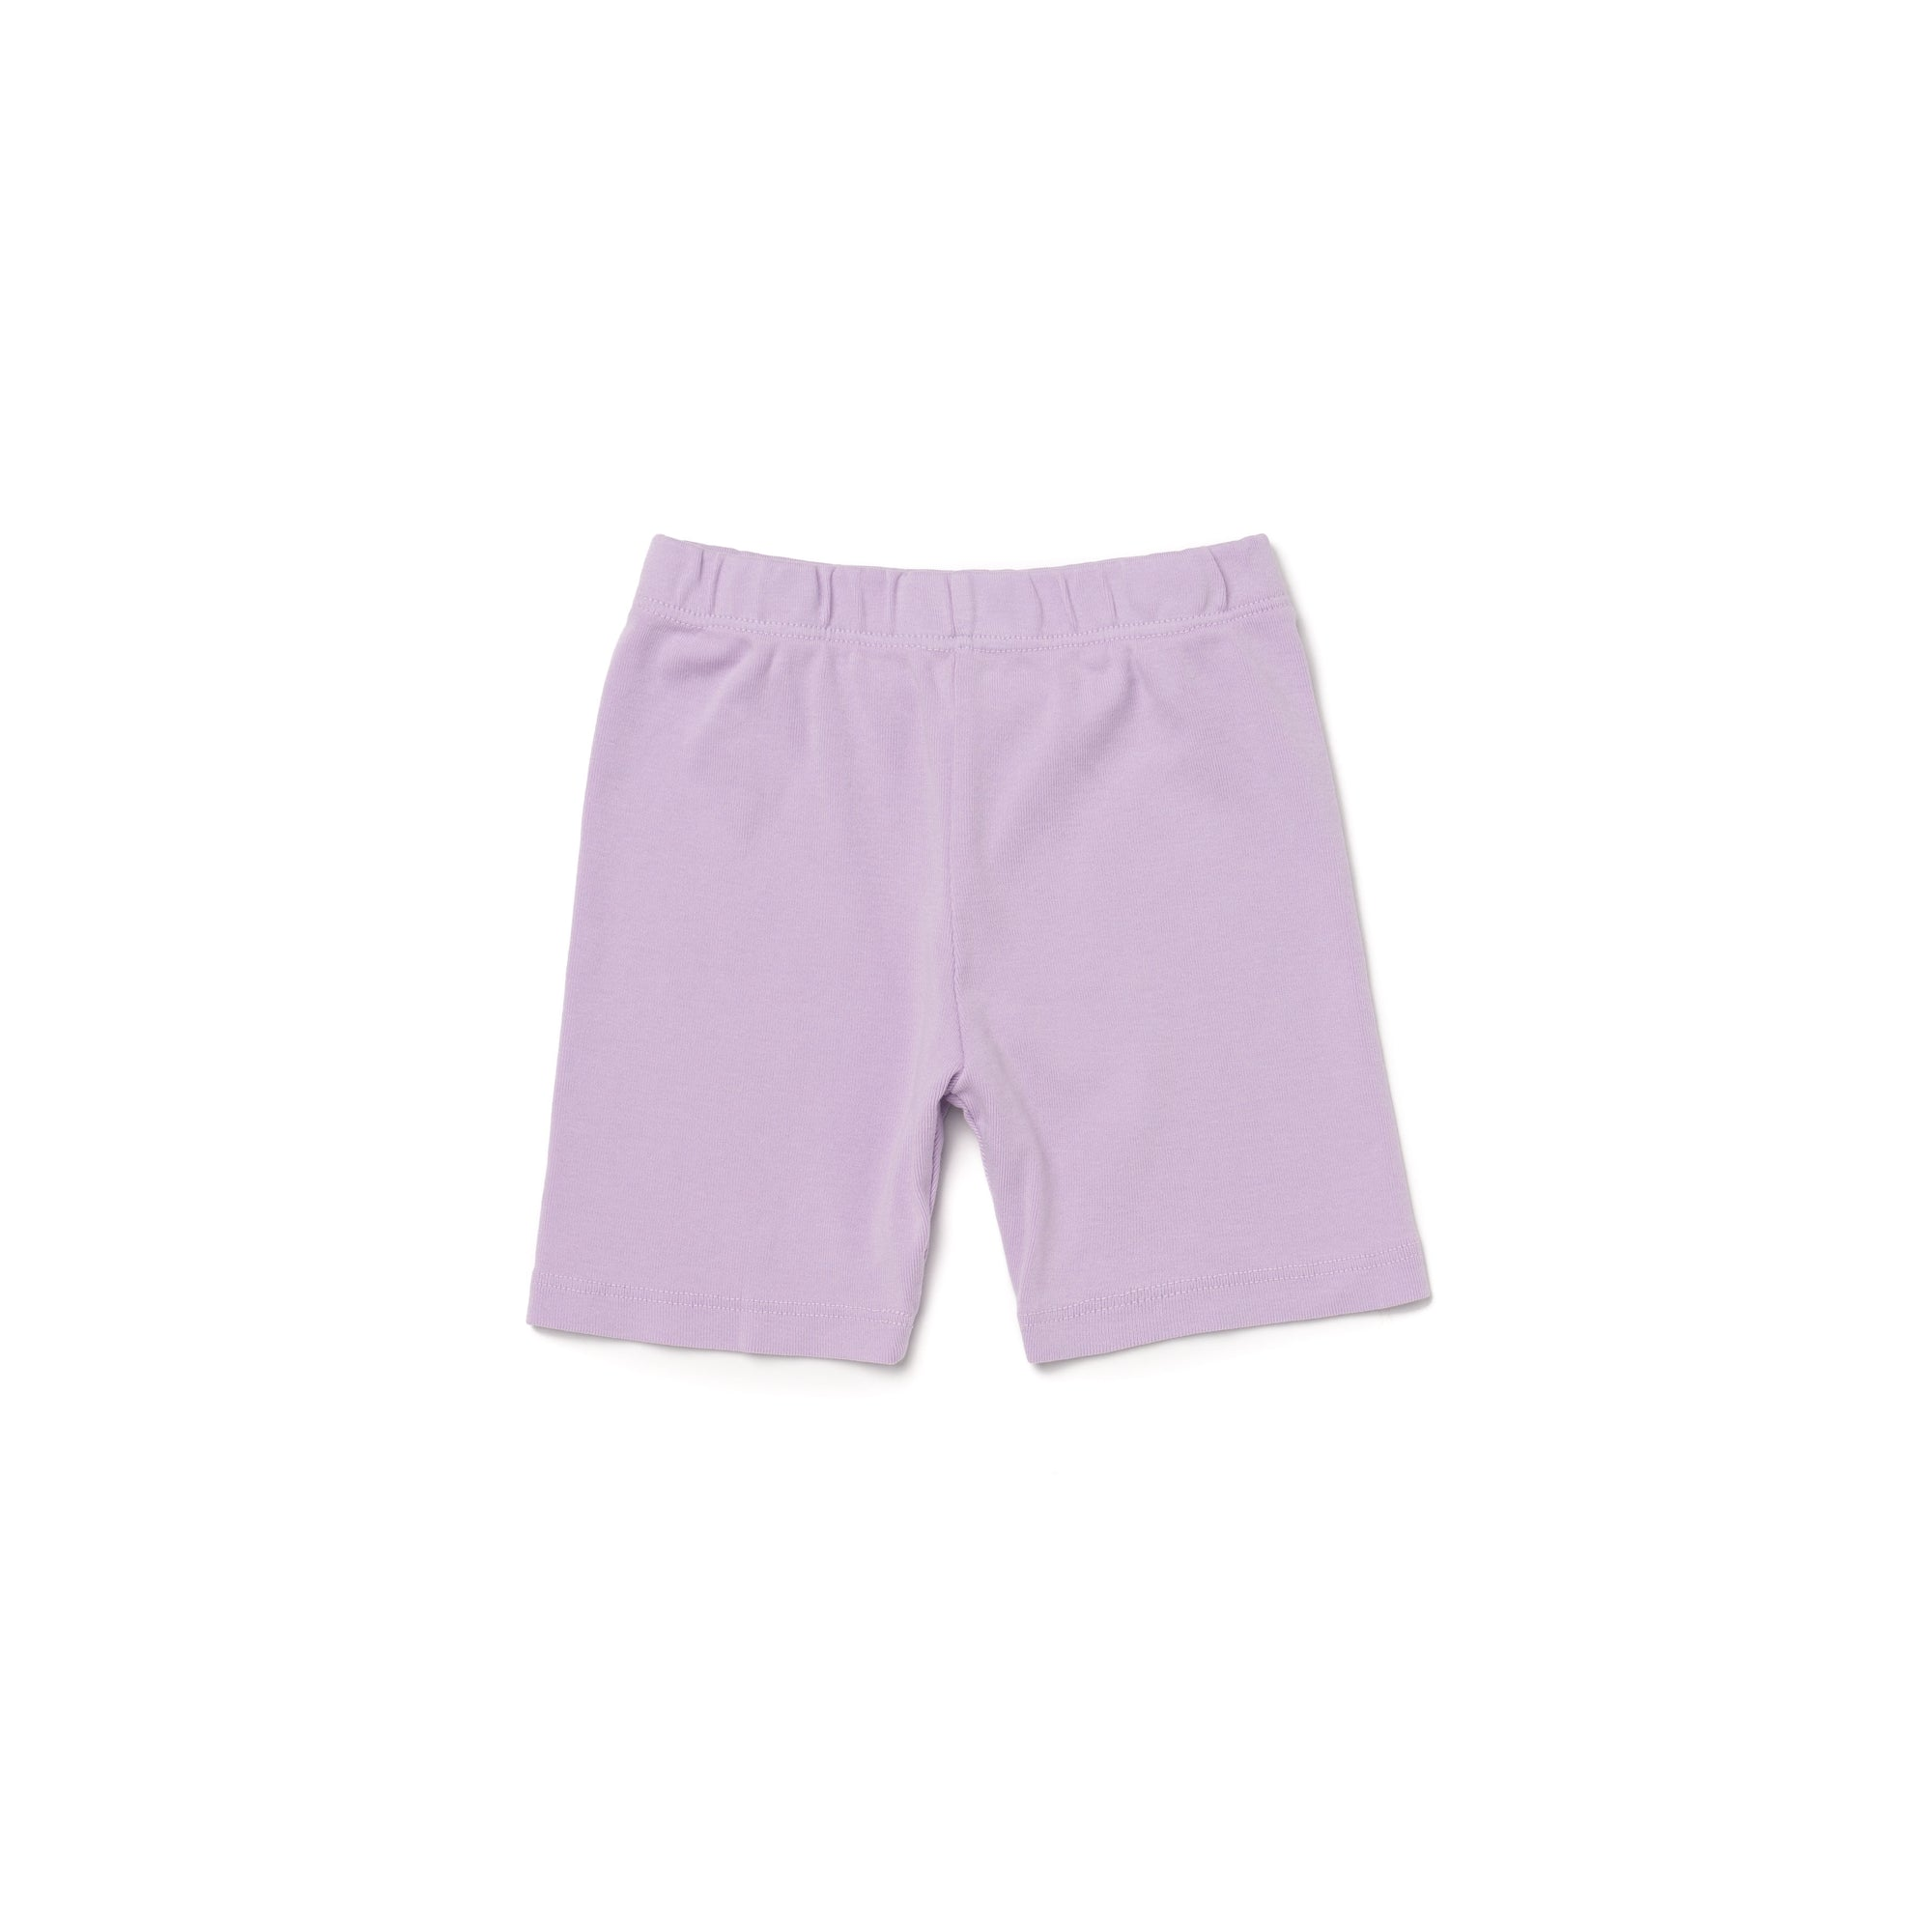 Organic Cotton Bike Shorts, Pastel Violet